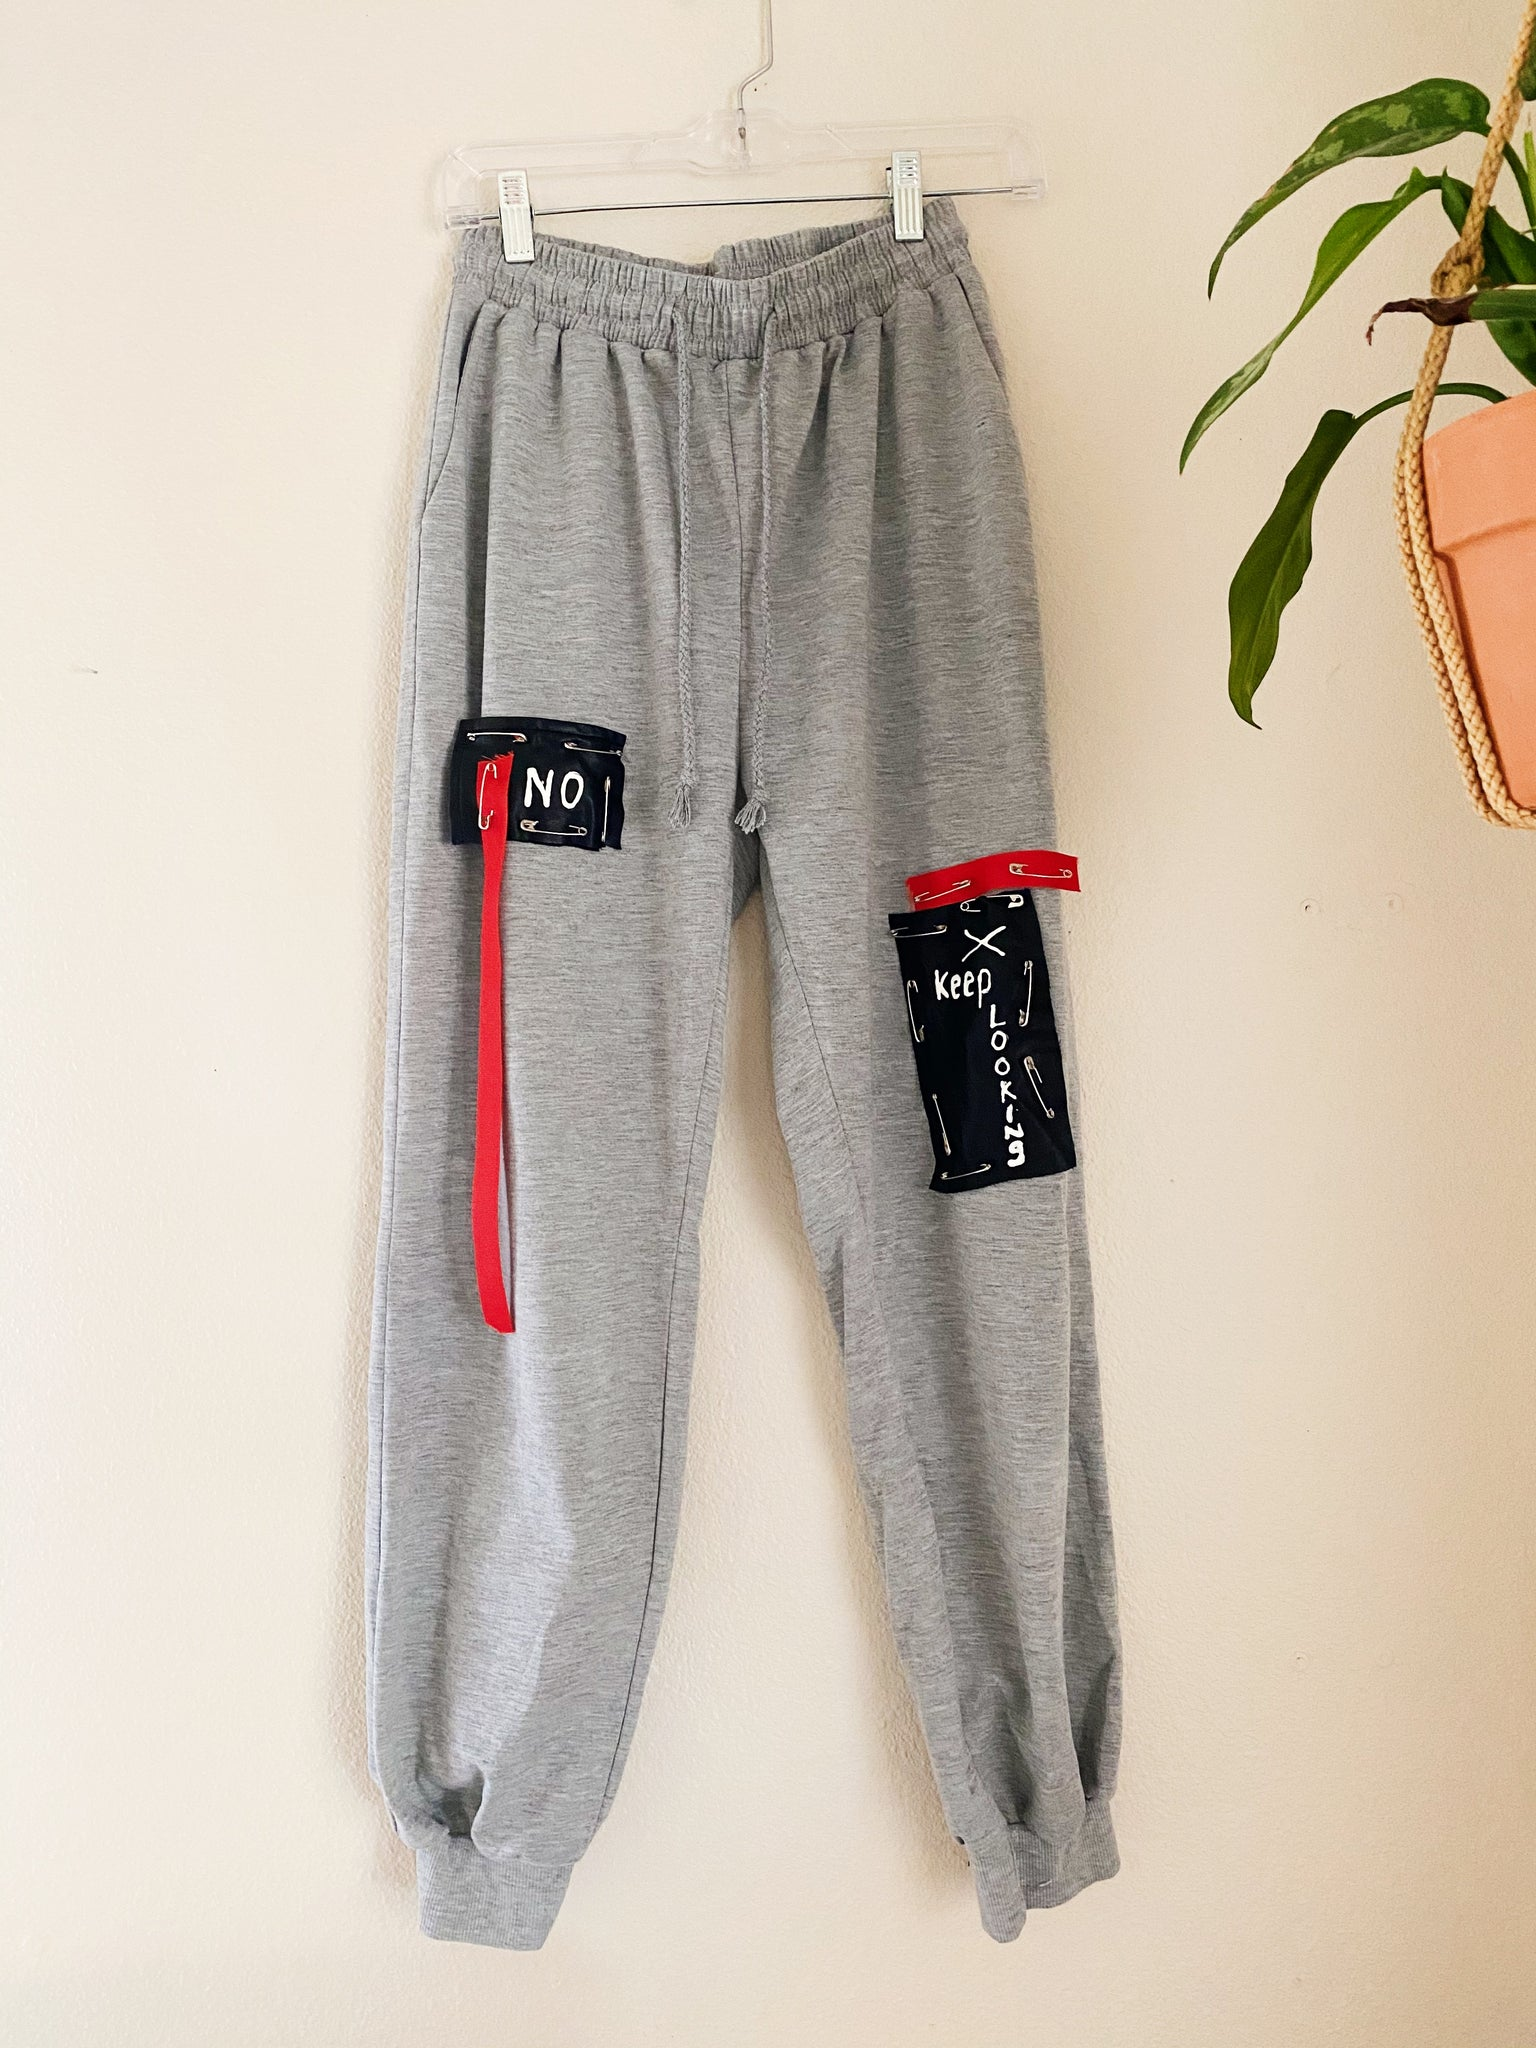 The Glendale Sweatpants